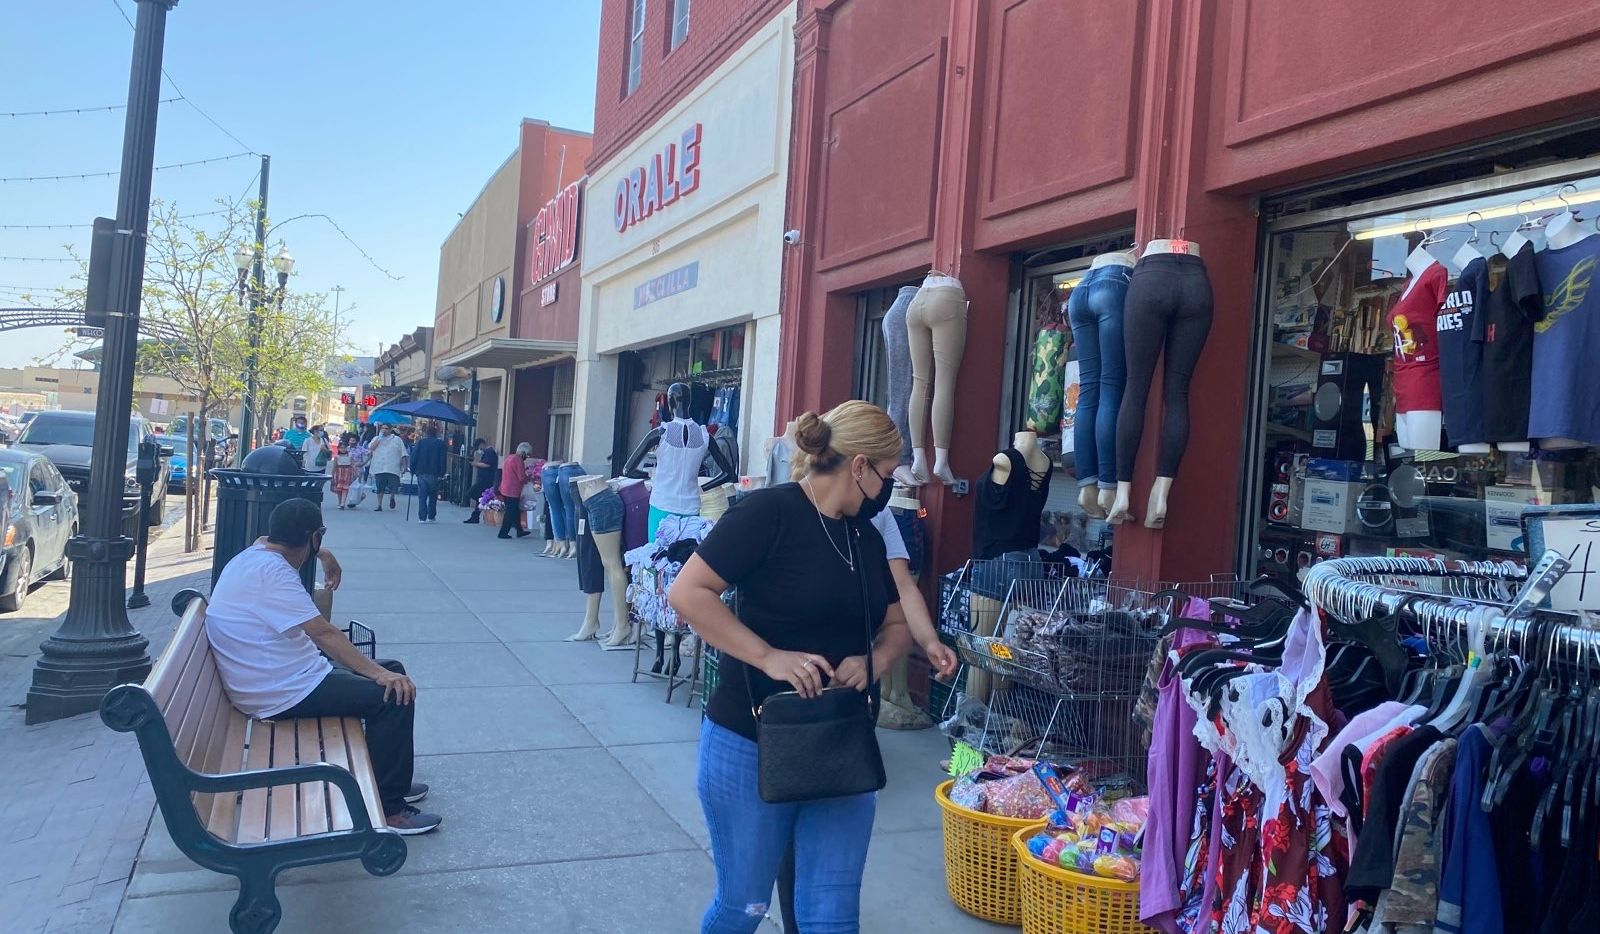 Fewer shoppers are on the street in the shopping district just across from El Paso in Ciudad Juarez, Mexico, seen here in early April.